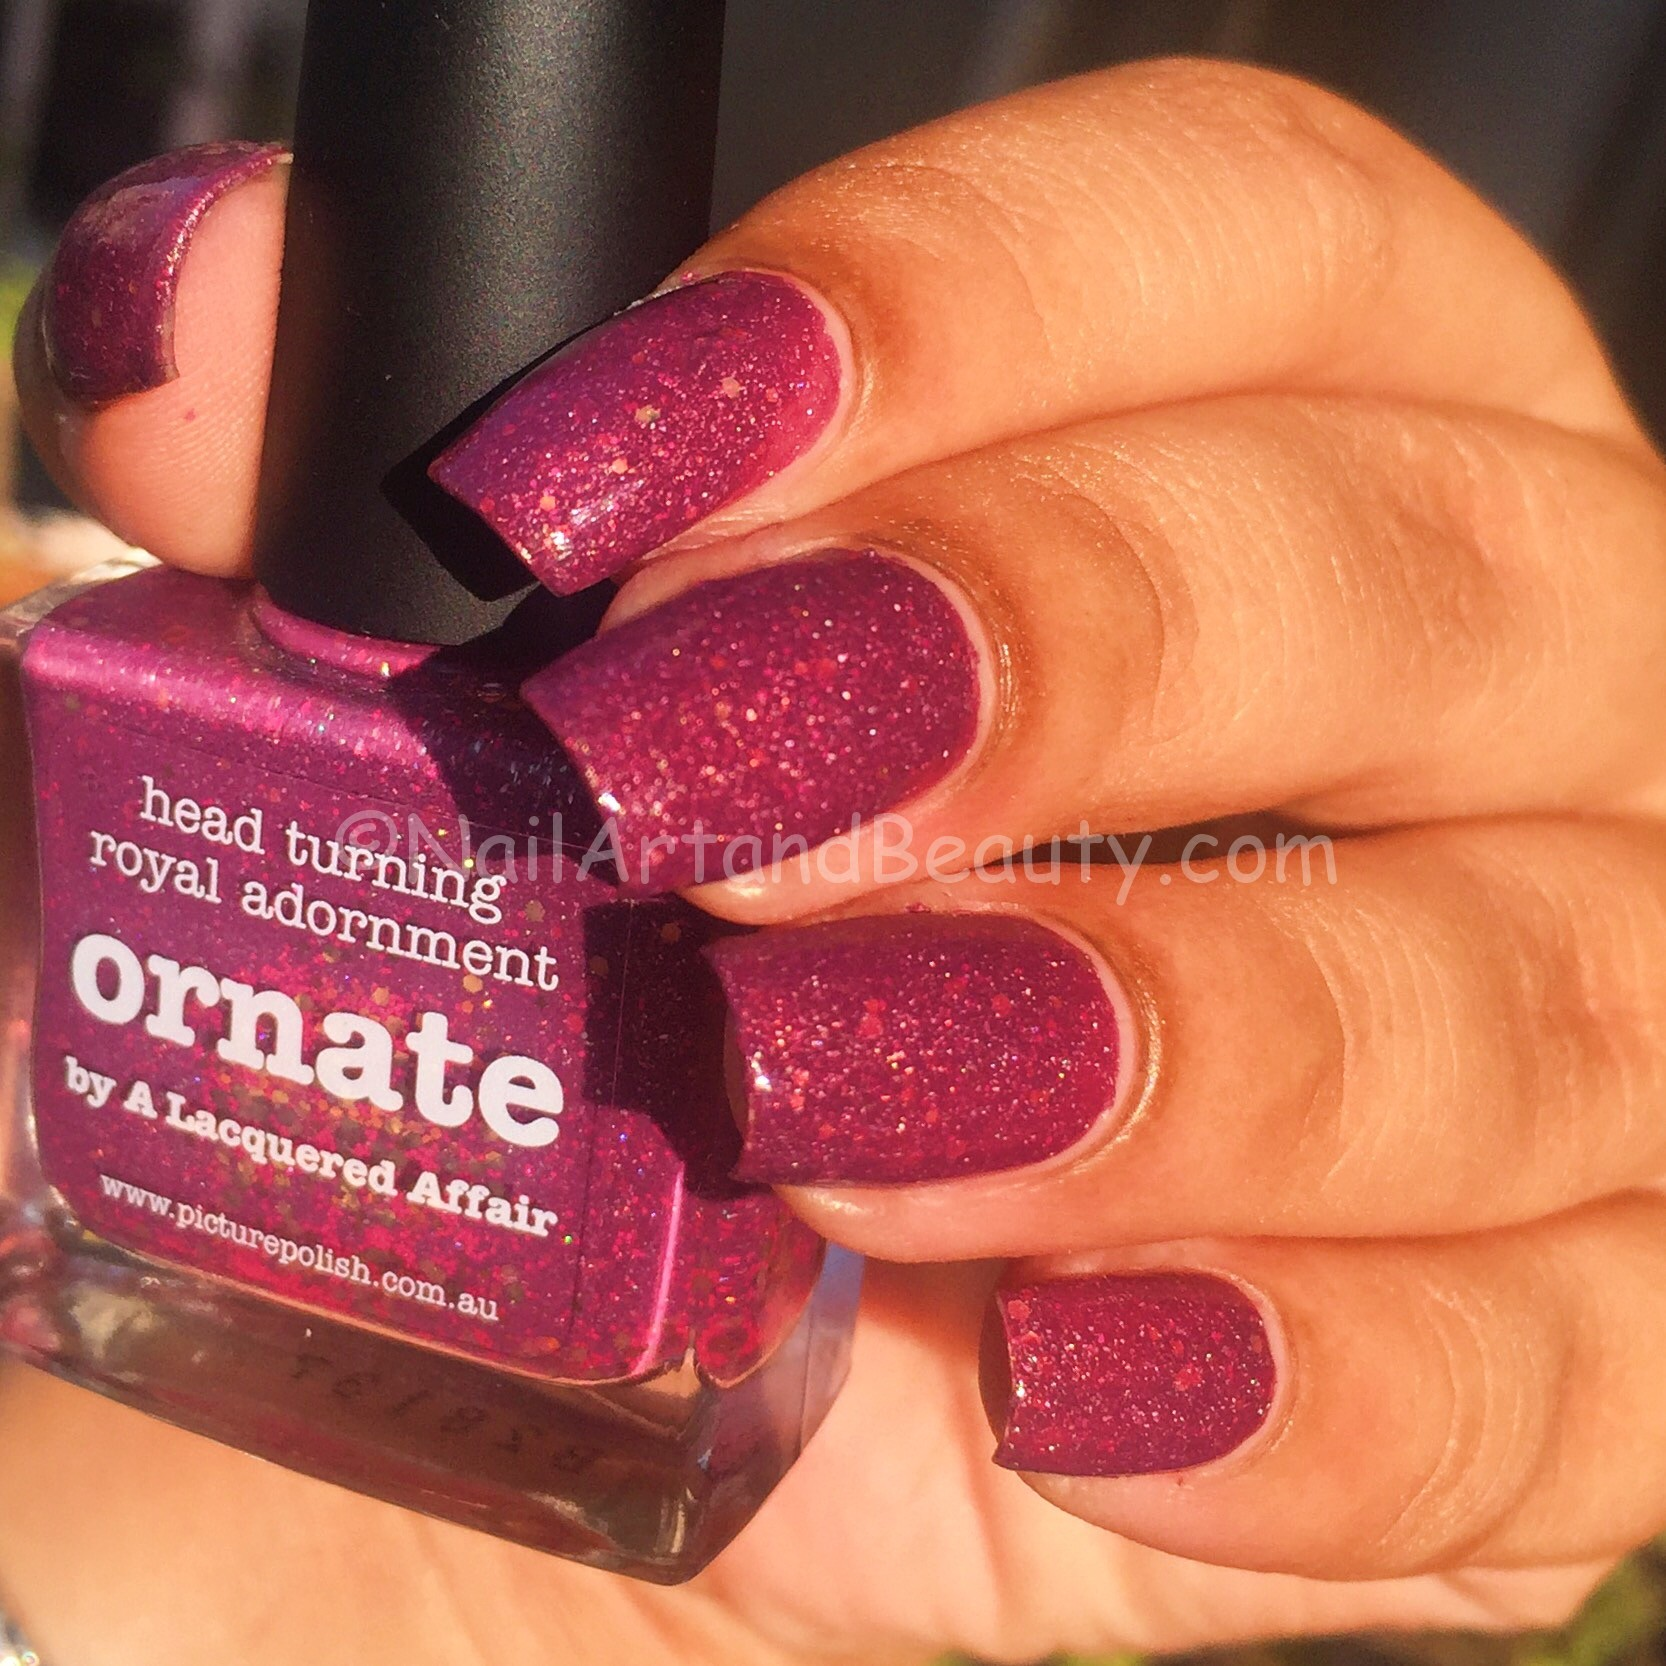 swatch-of-picture-polish-ornate